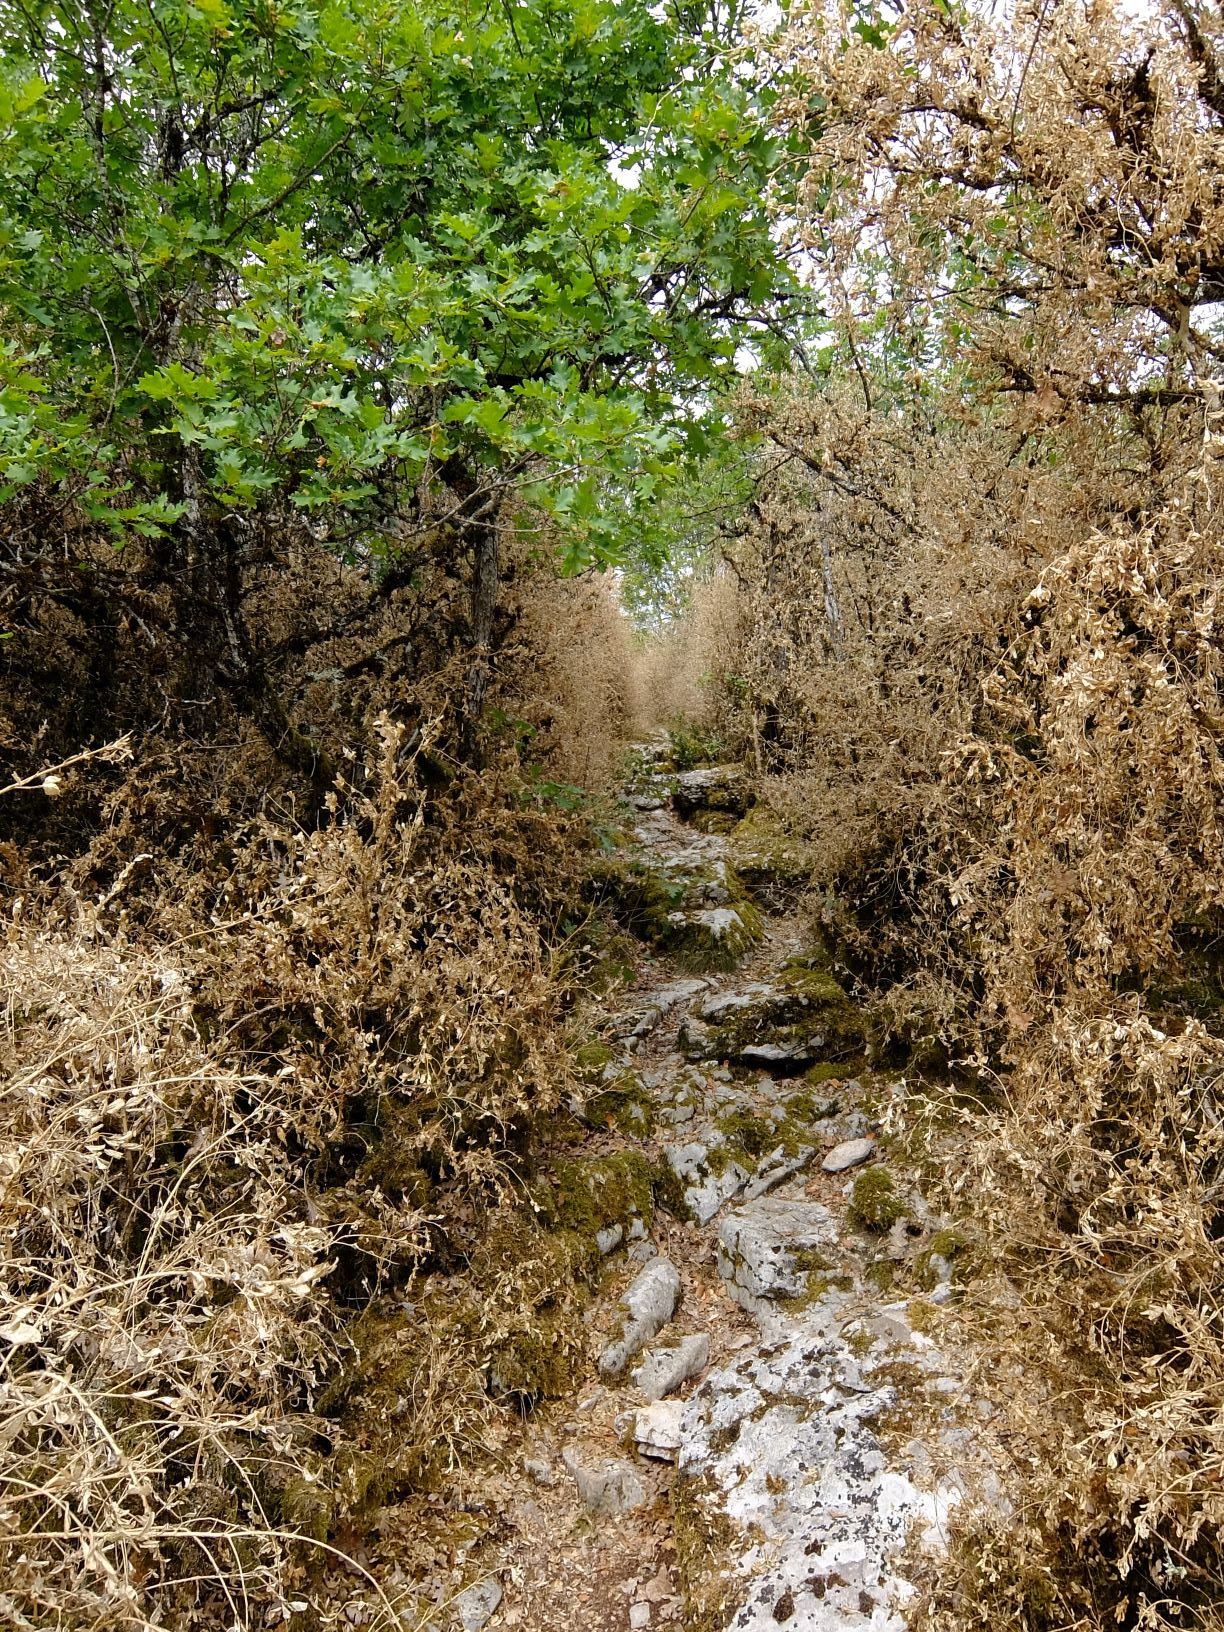 a hiking path lined with dried plants